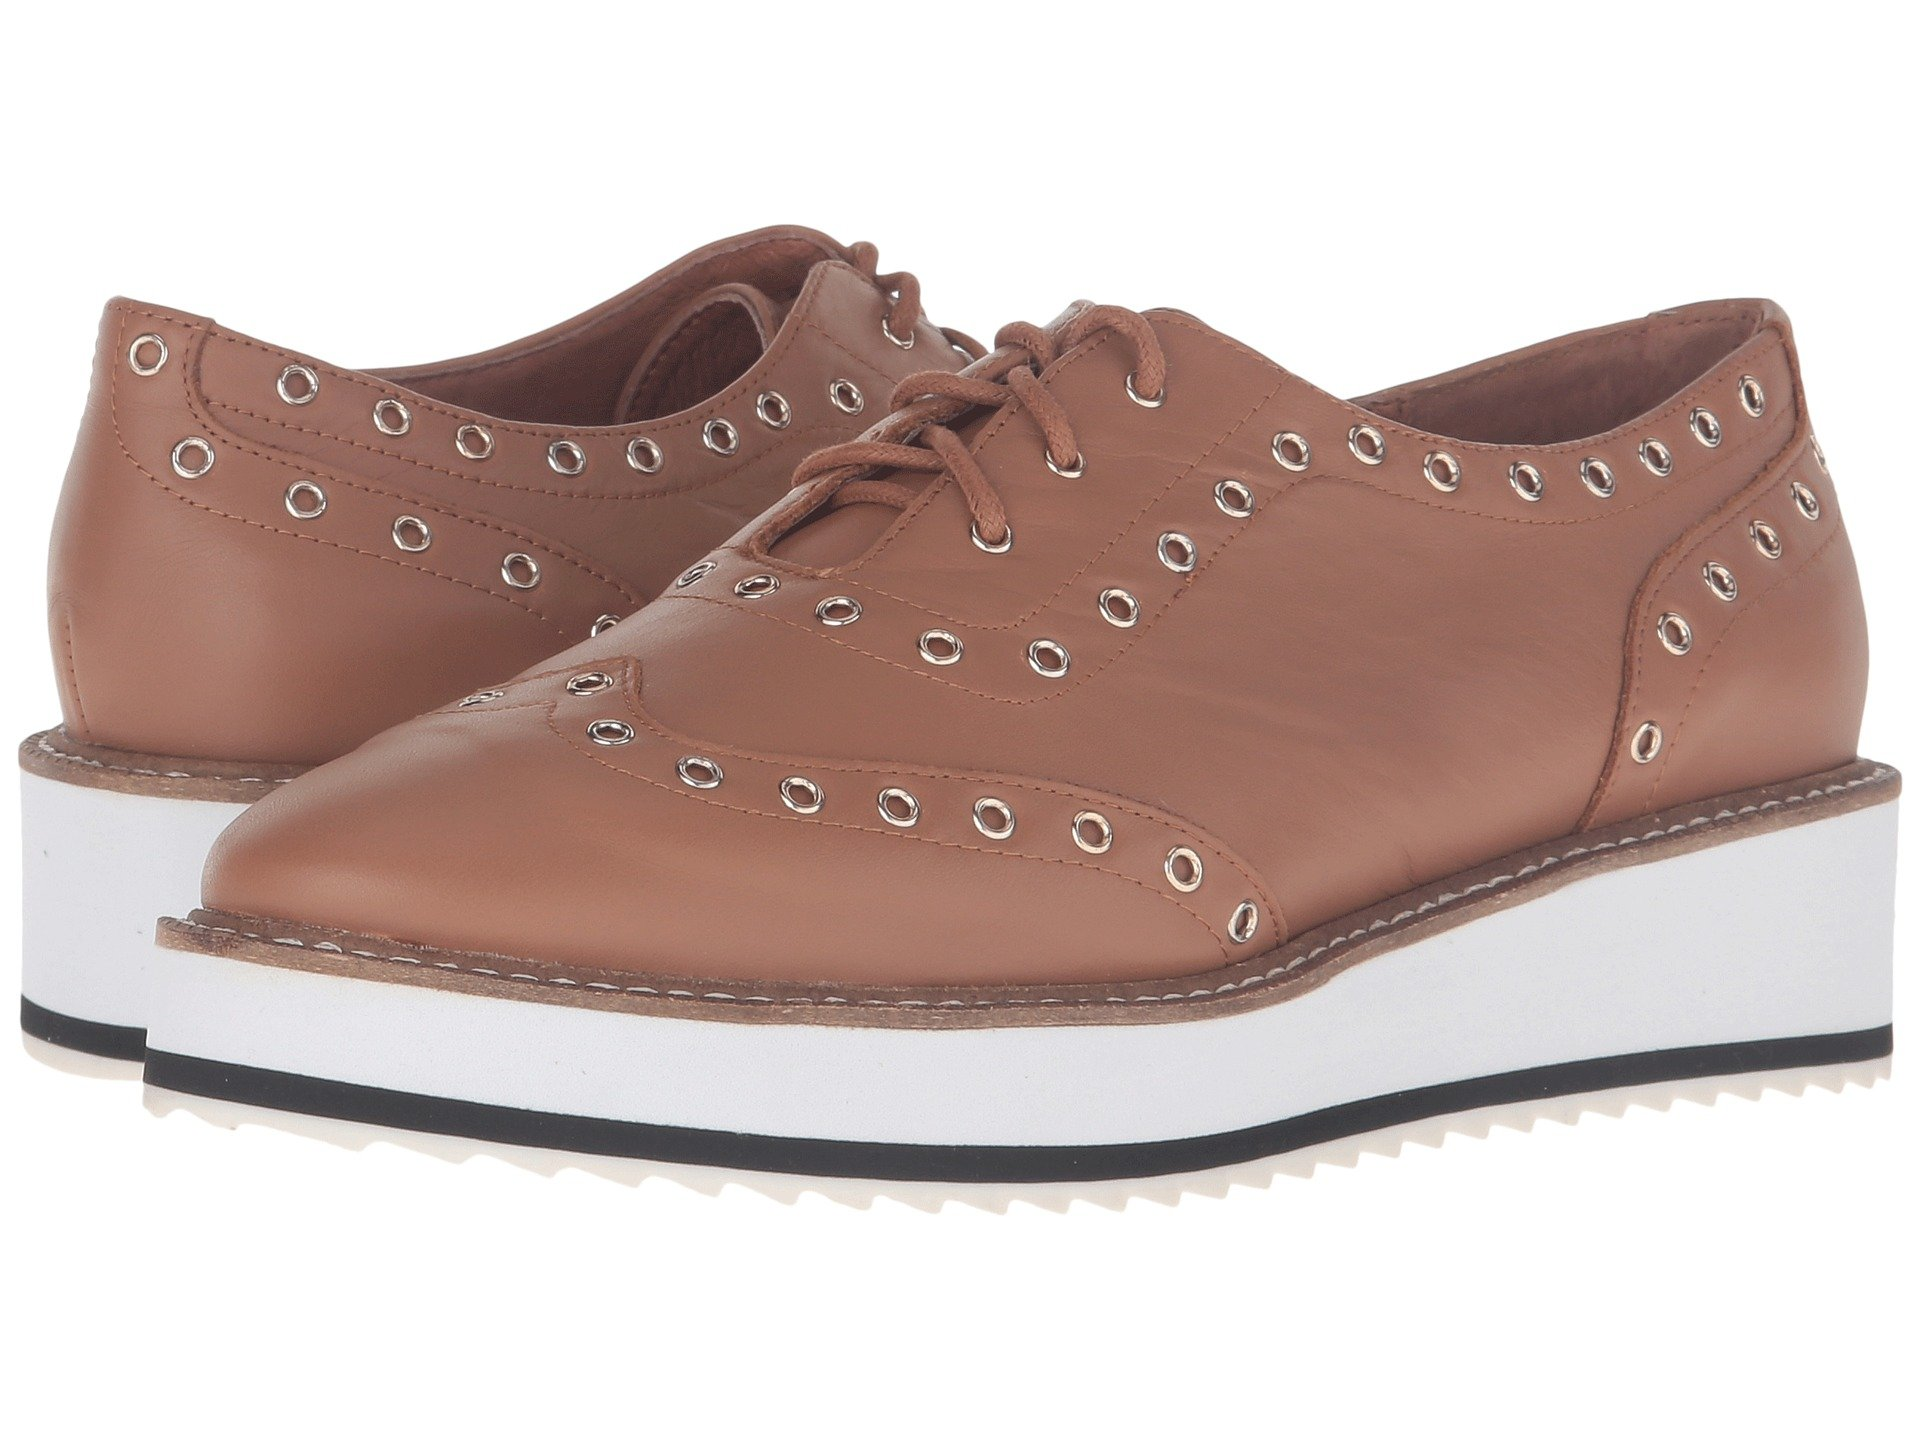 Shellys London Women's Shoes Winchester Tan Leather upper with ...